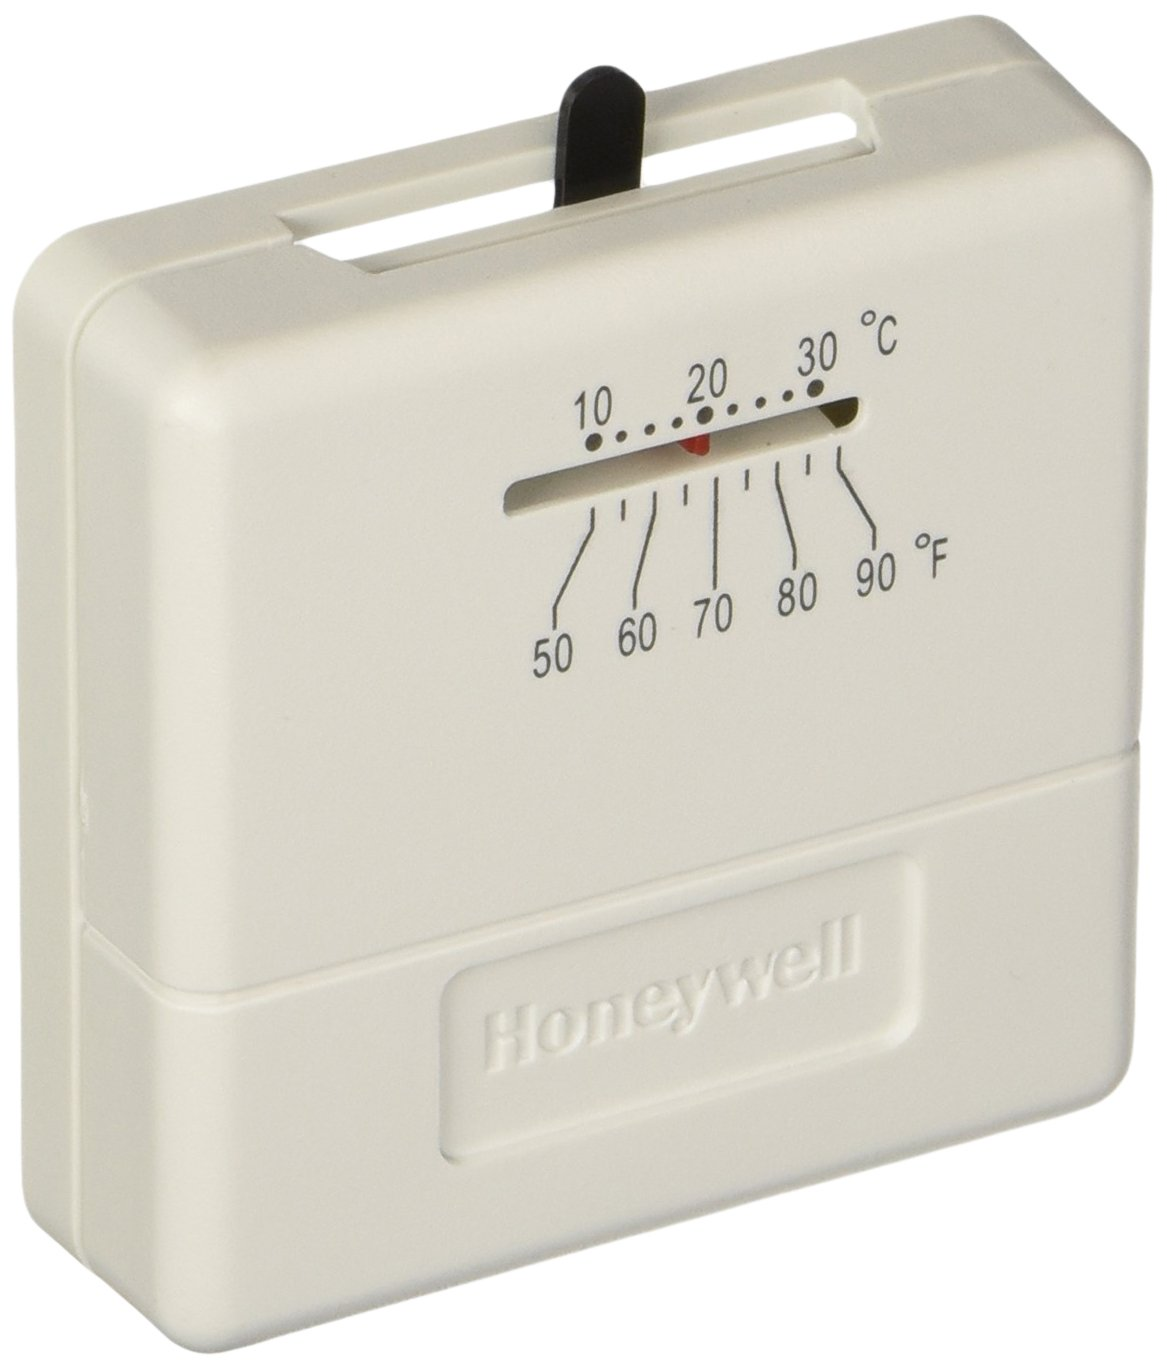 Honeywell T812A1002 Heating Only Thermostat - Programmable Household ...